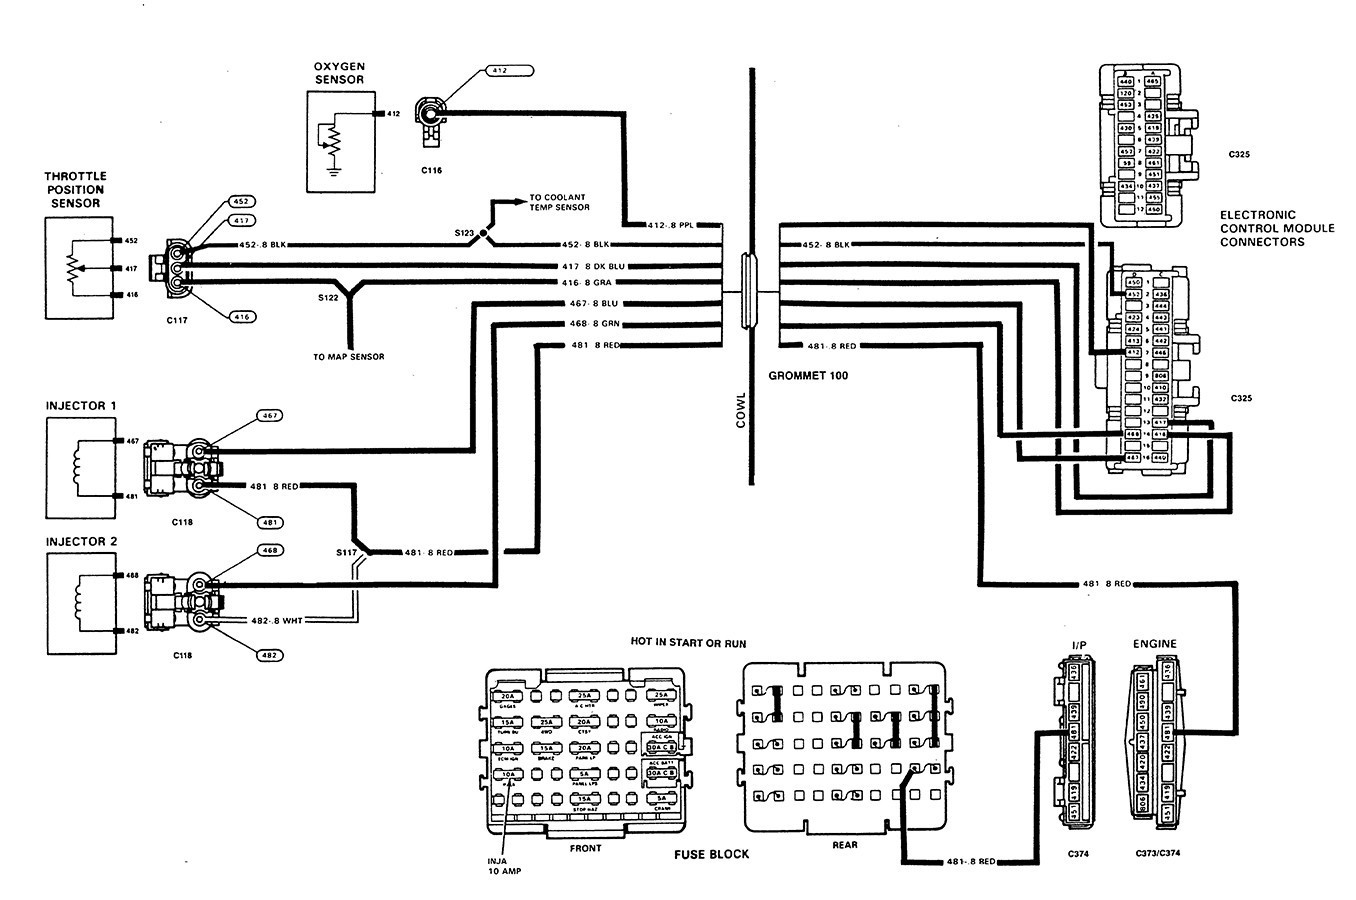 Wiring Diagram 4 Wire O2 Sensor 1996 Gm - Wiring Diagrams Schematics